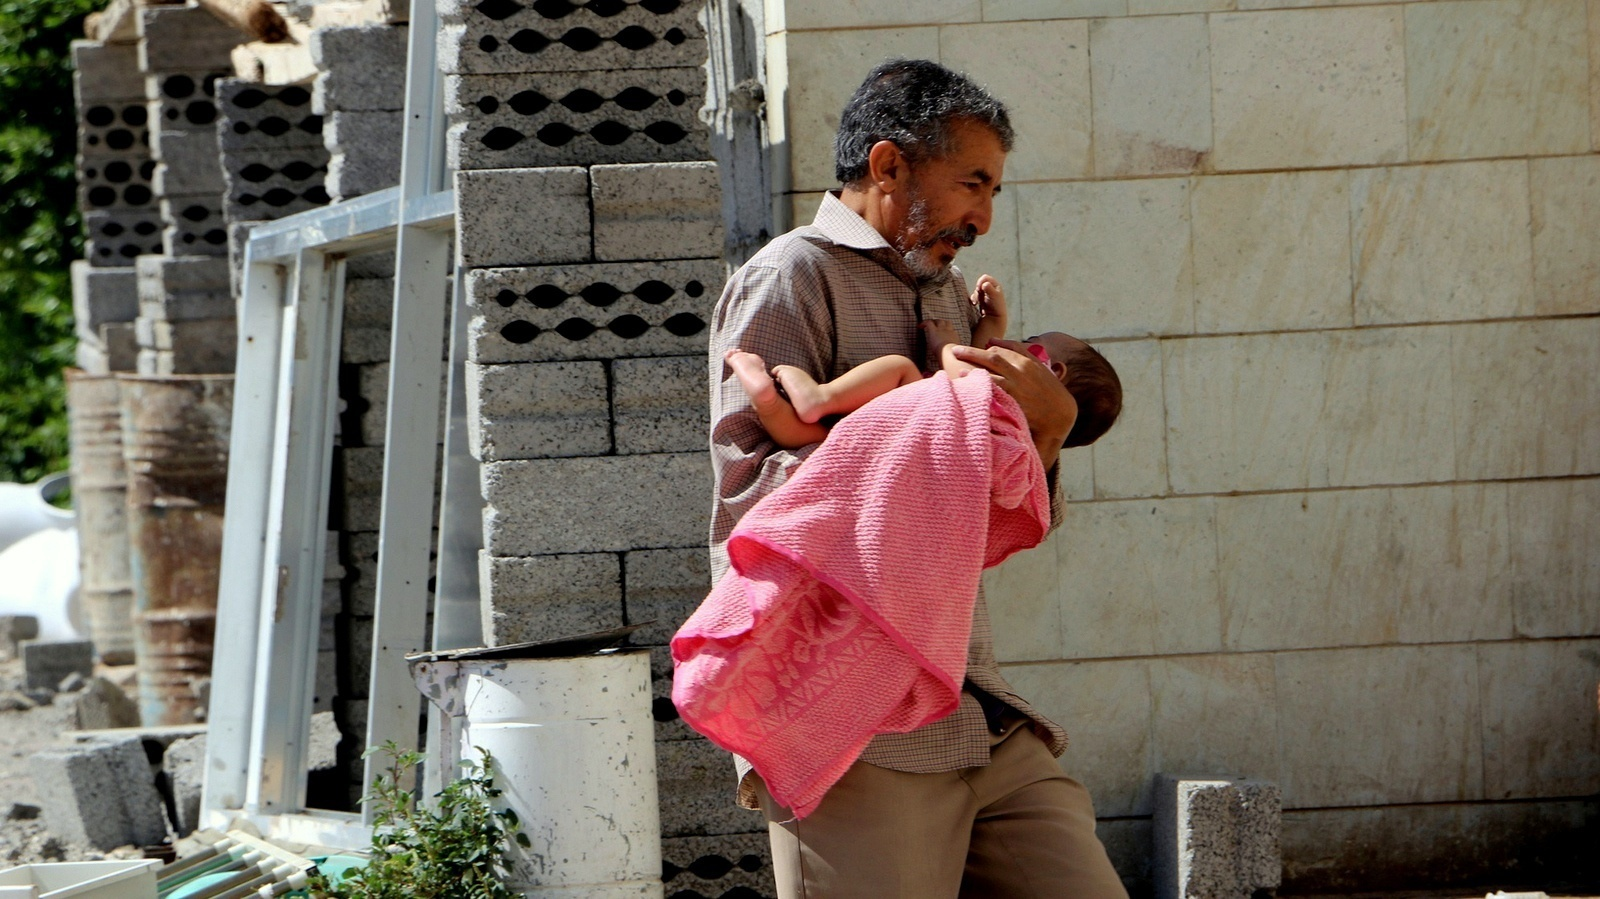 A child who was injured in Saudi Arabia's ongoing assault on Yemen is brought to a hospital by her father, in Taiz, Yemen, Sunday, Oct. 25, 2015. The U.N. says at least 2,577 civilians were killed since the Saudi-led air campaign began in March, while 5,078 have been injured. (AP Photo/Abdulnasser Alseddik)